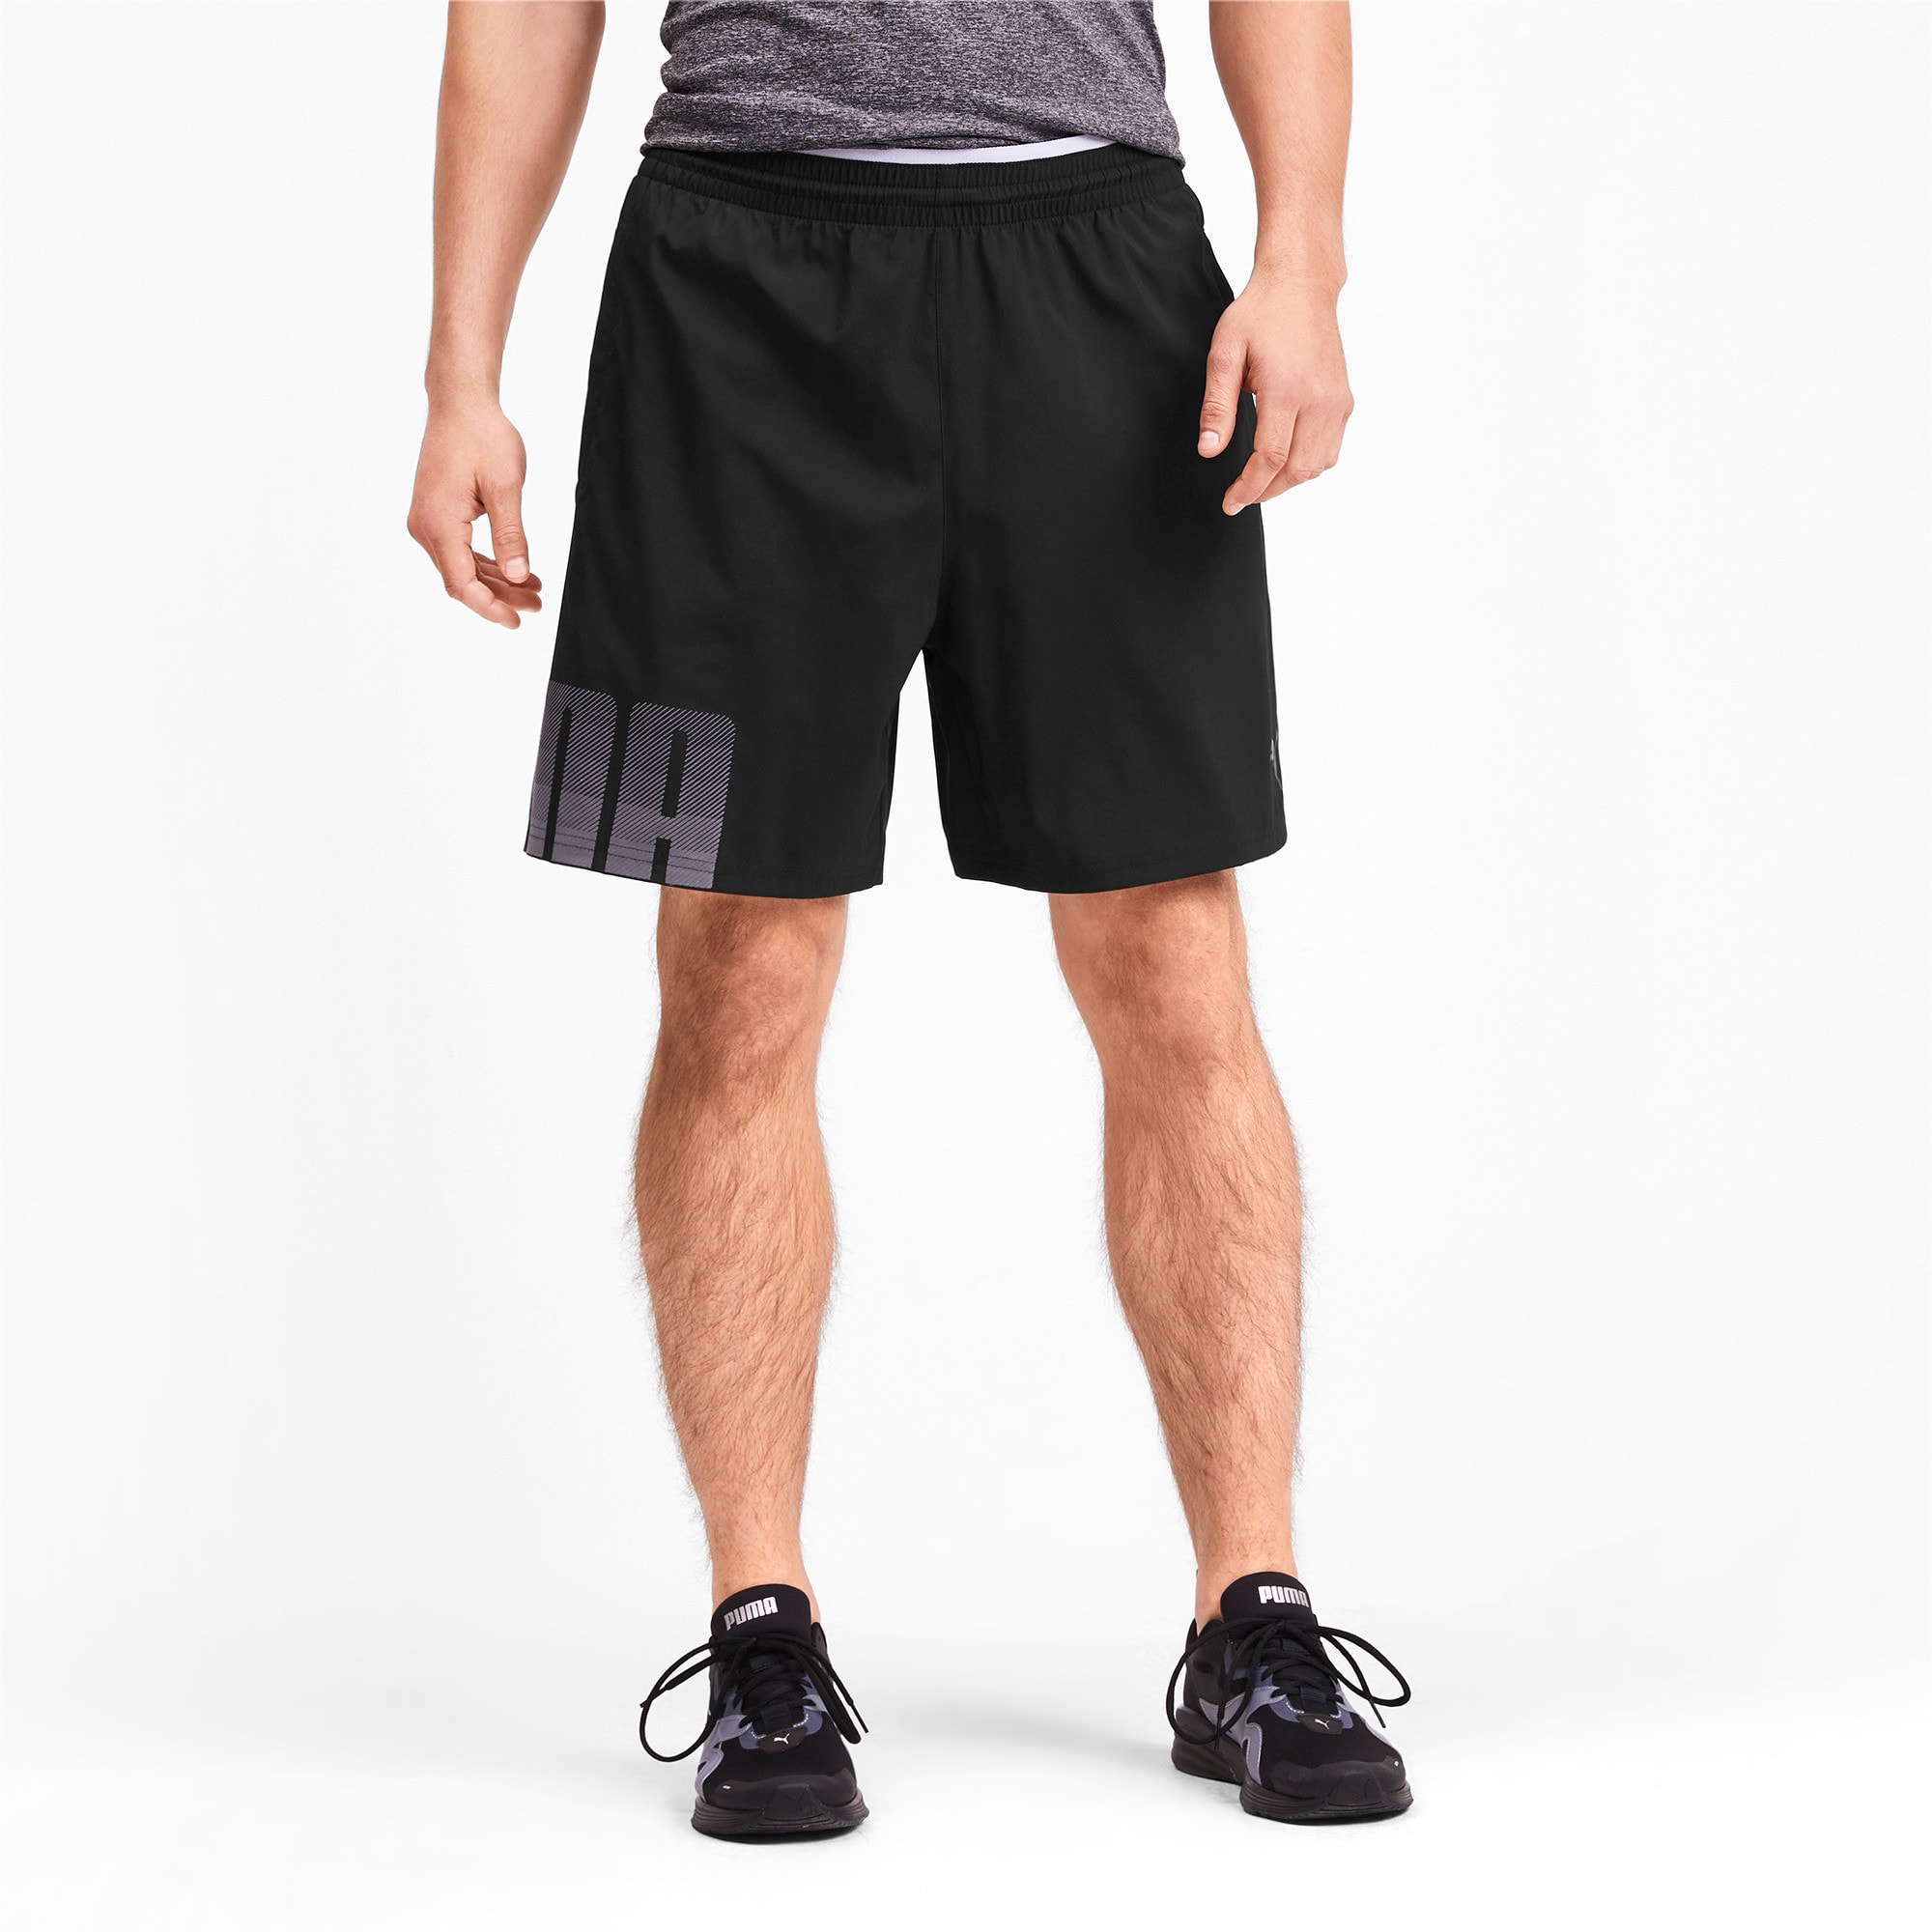 Thumbnail 1 of Collective Woven Men's Training Shorts, Puma Black, medium